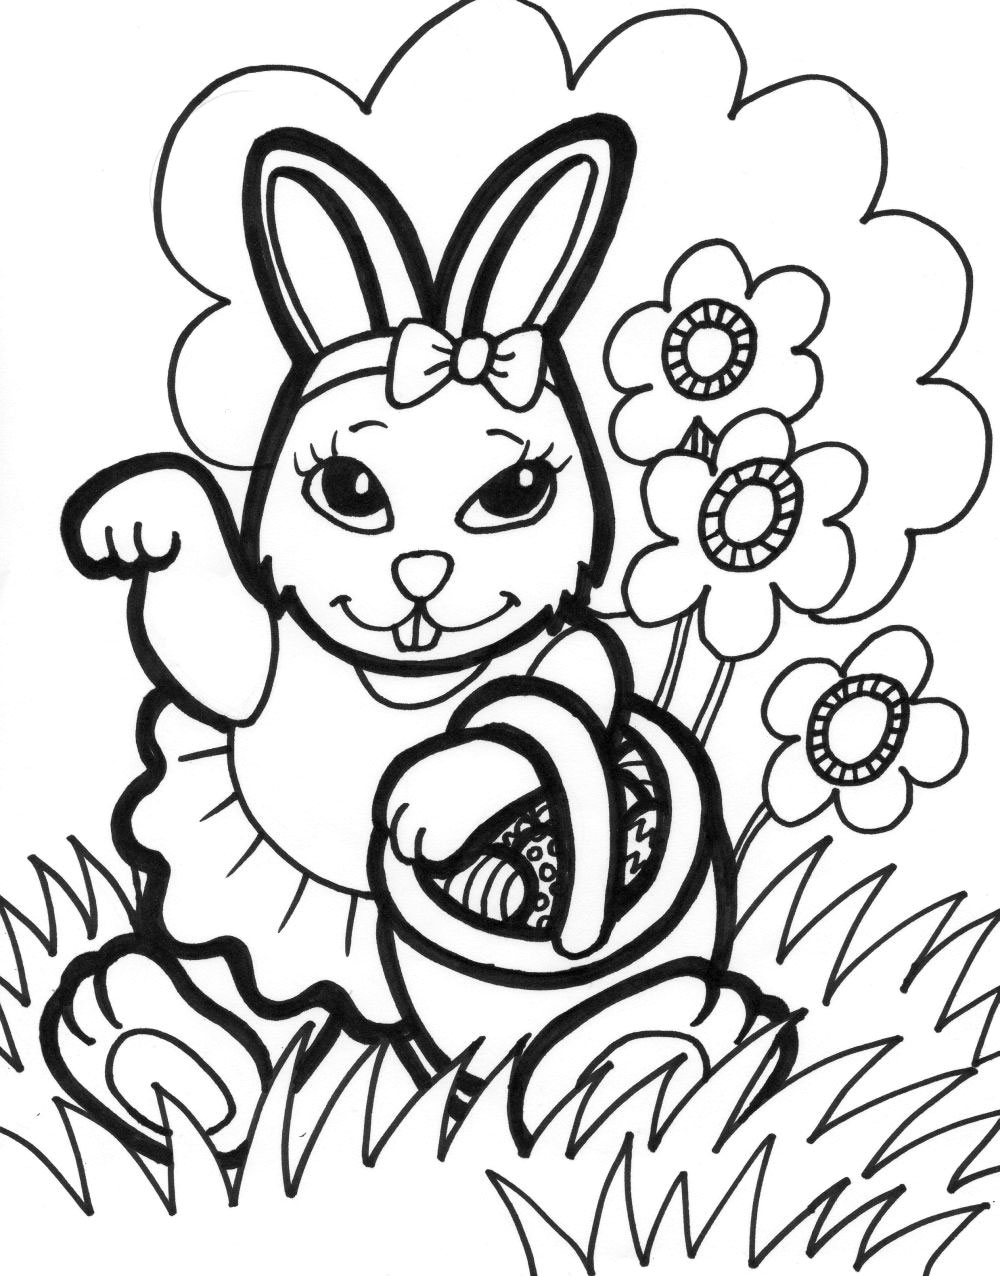 Bunny Coloring Sheets Free Printable 1110 Gallery Of Delighted Bunny Print Out Coloring Pages Easter for Kids Crazy Printable